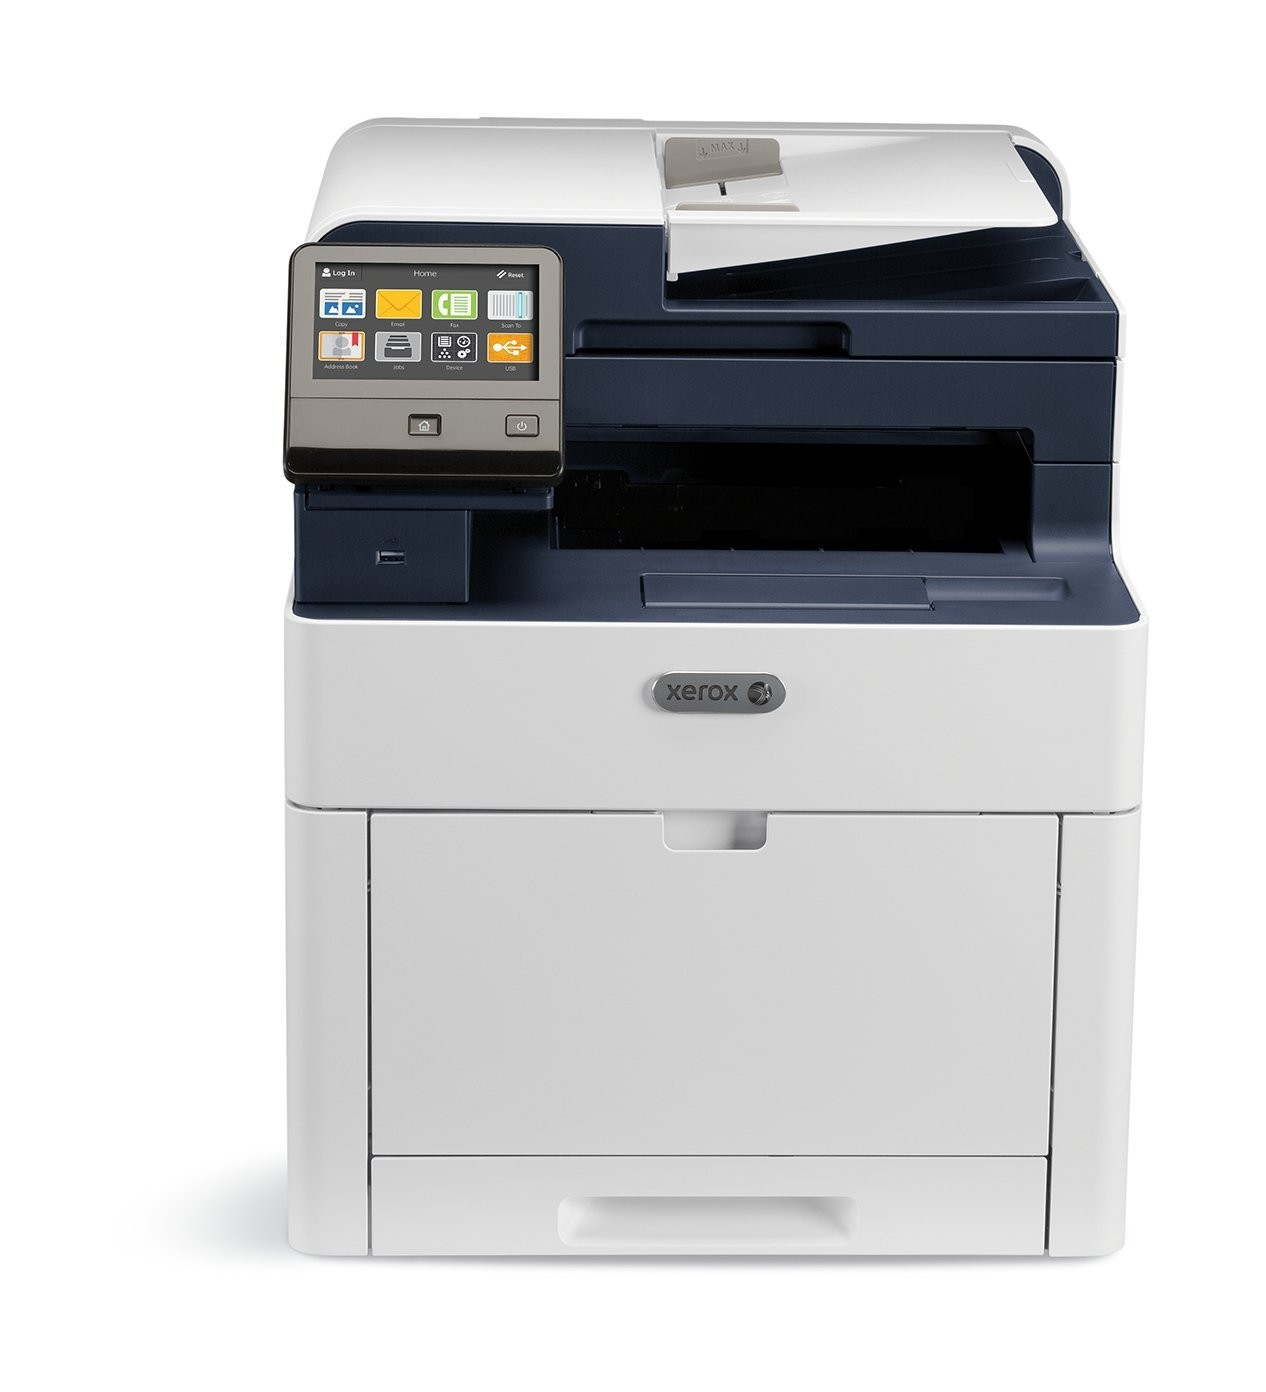 Xerox WorkCentre 6515 Laser Color All-in-One Printer 6515/DNI (Demo 606 Pages Used)